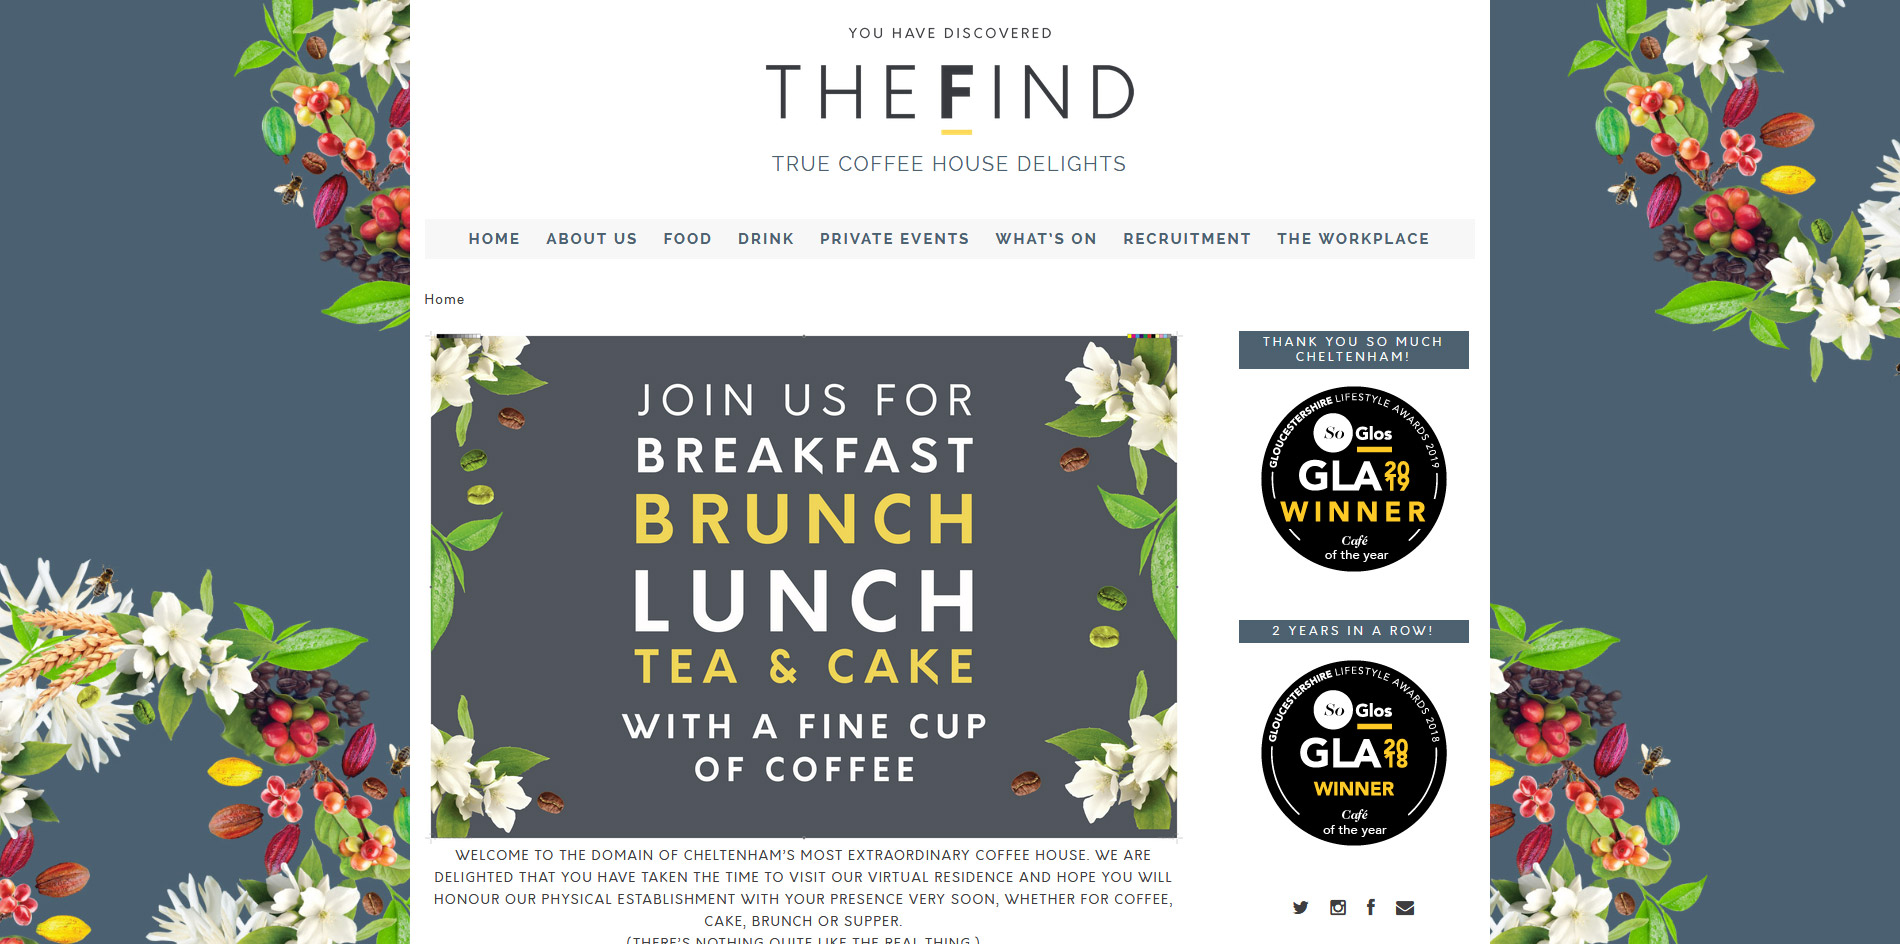 The FIND Website